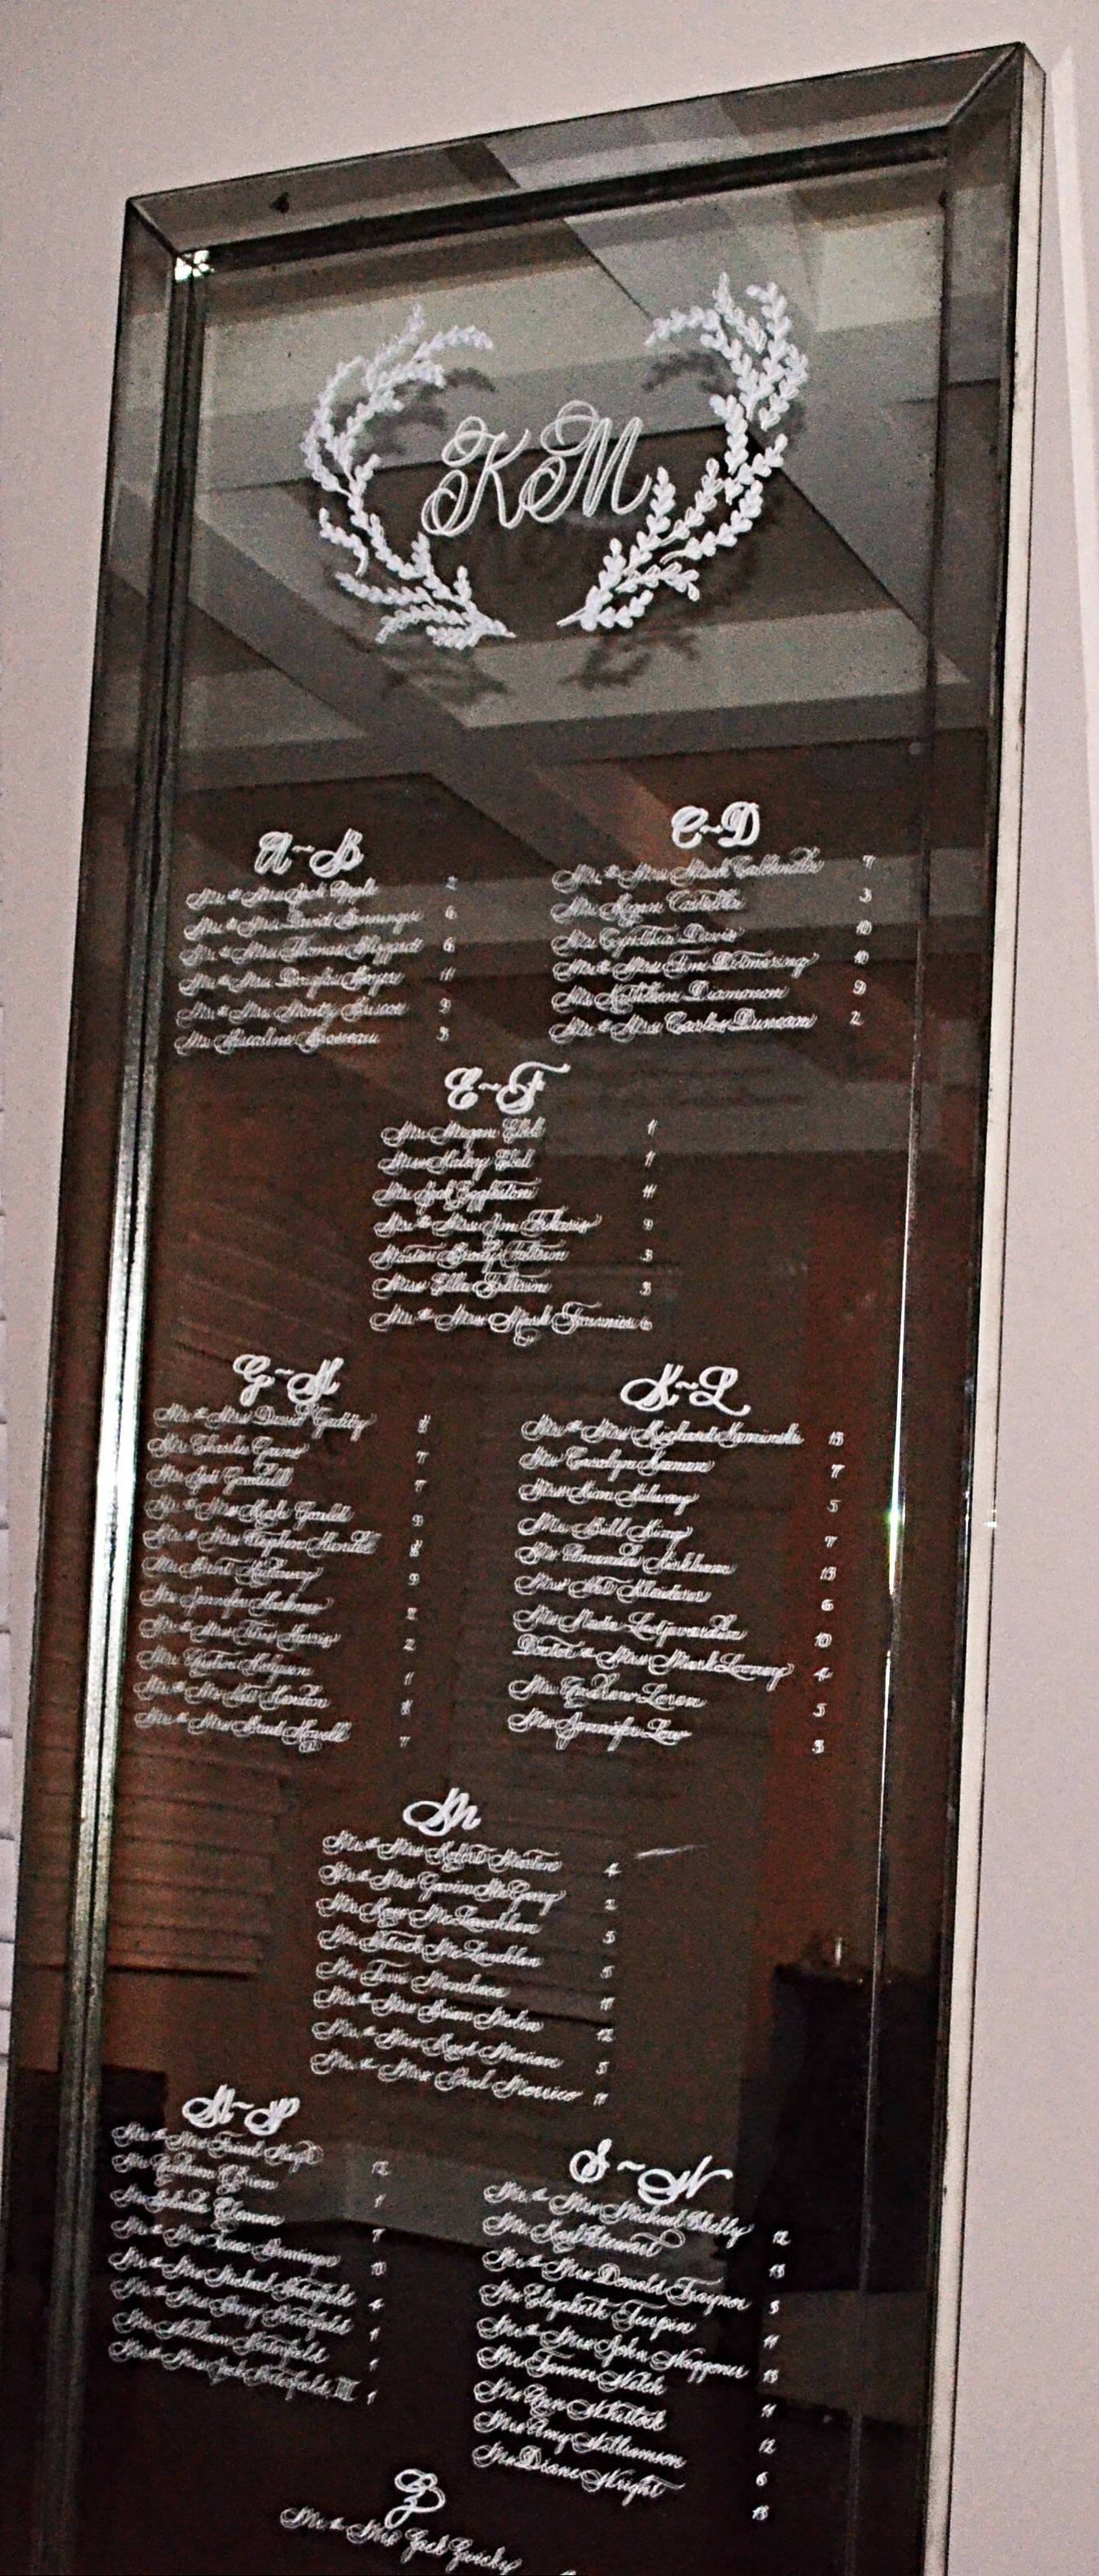 Houston Calligraphy Mirror Seating Chart 3.JPG